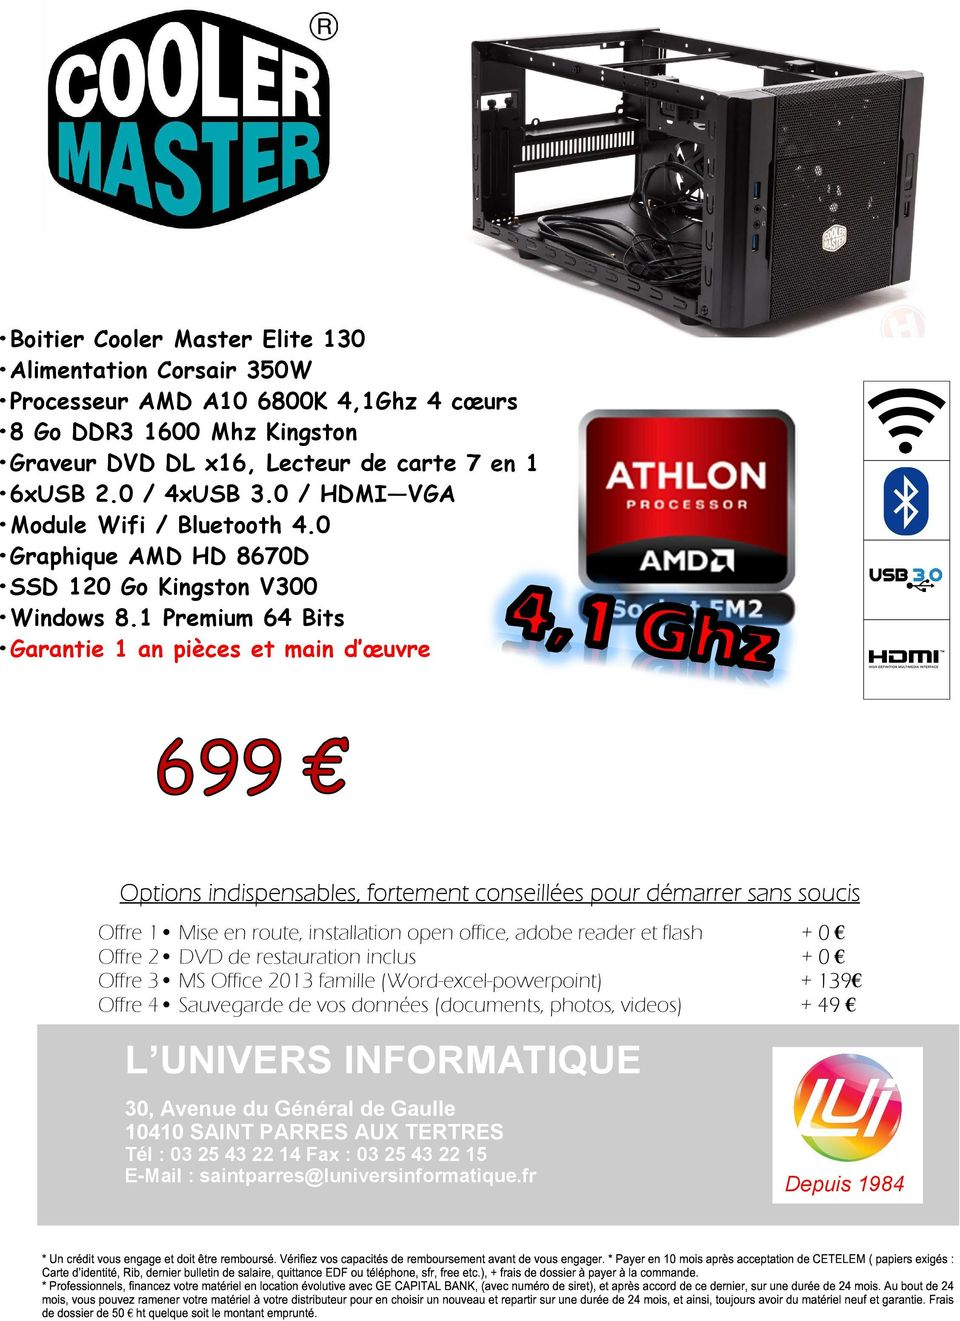 0 Graphique AMD HD 8670D SSD 120 Go Kingston V300 Offre 1 Mise en route, installation open office, adobe reader et flash Offre 2